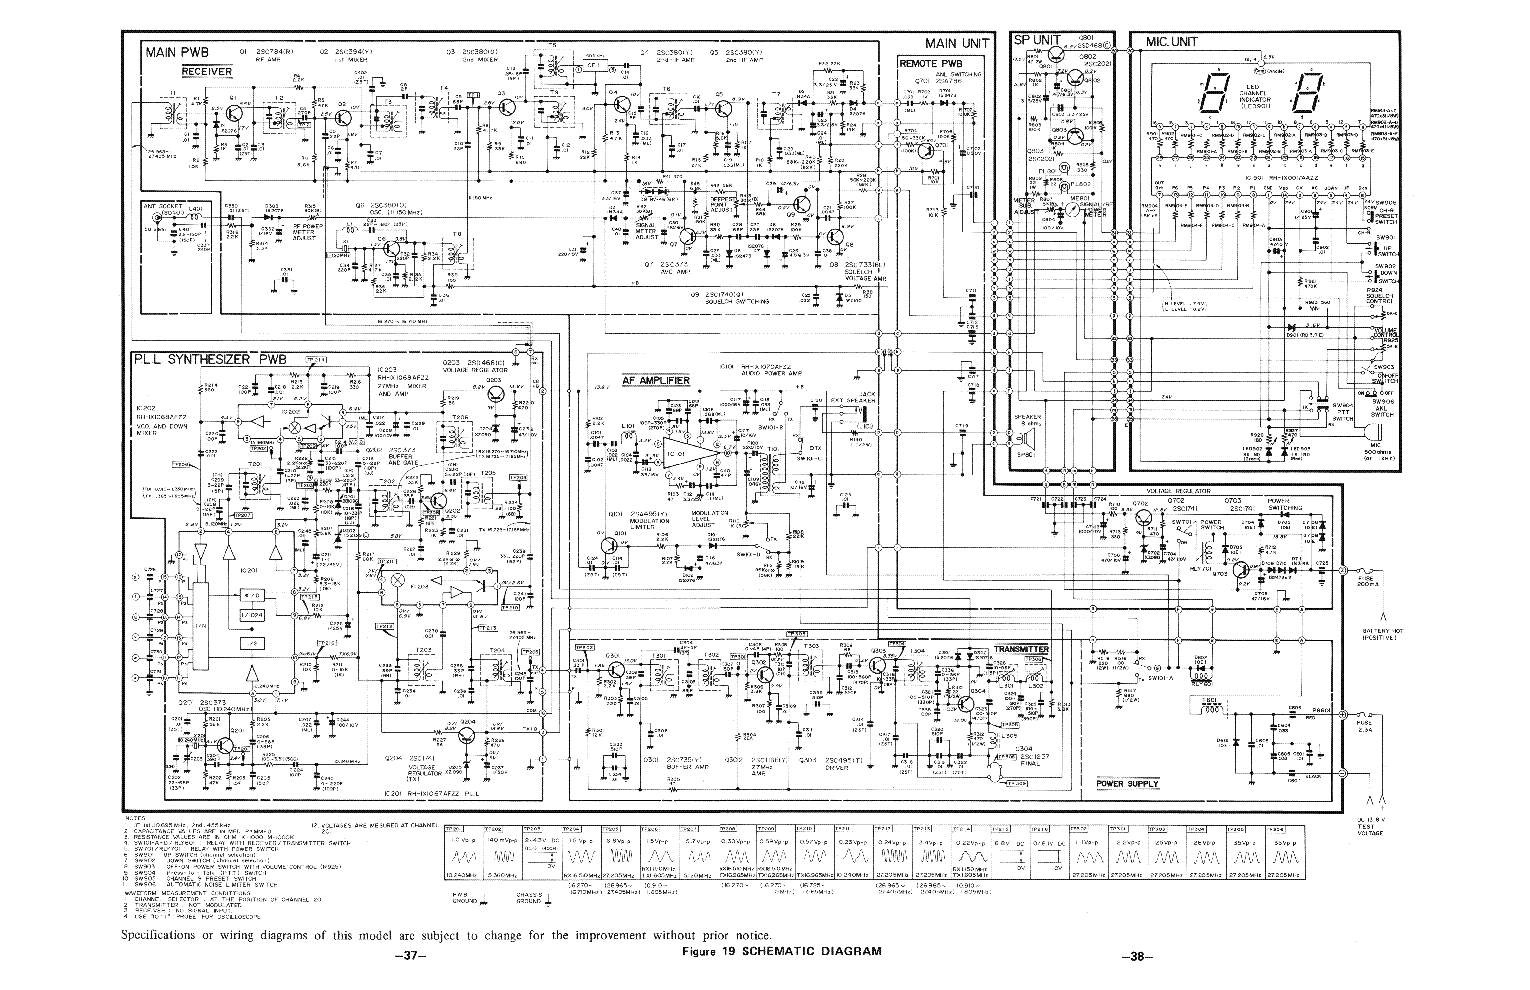 SHARP CB4670 Service Manual download, schematics, eeprom